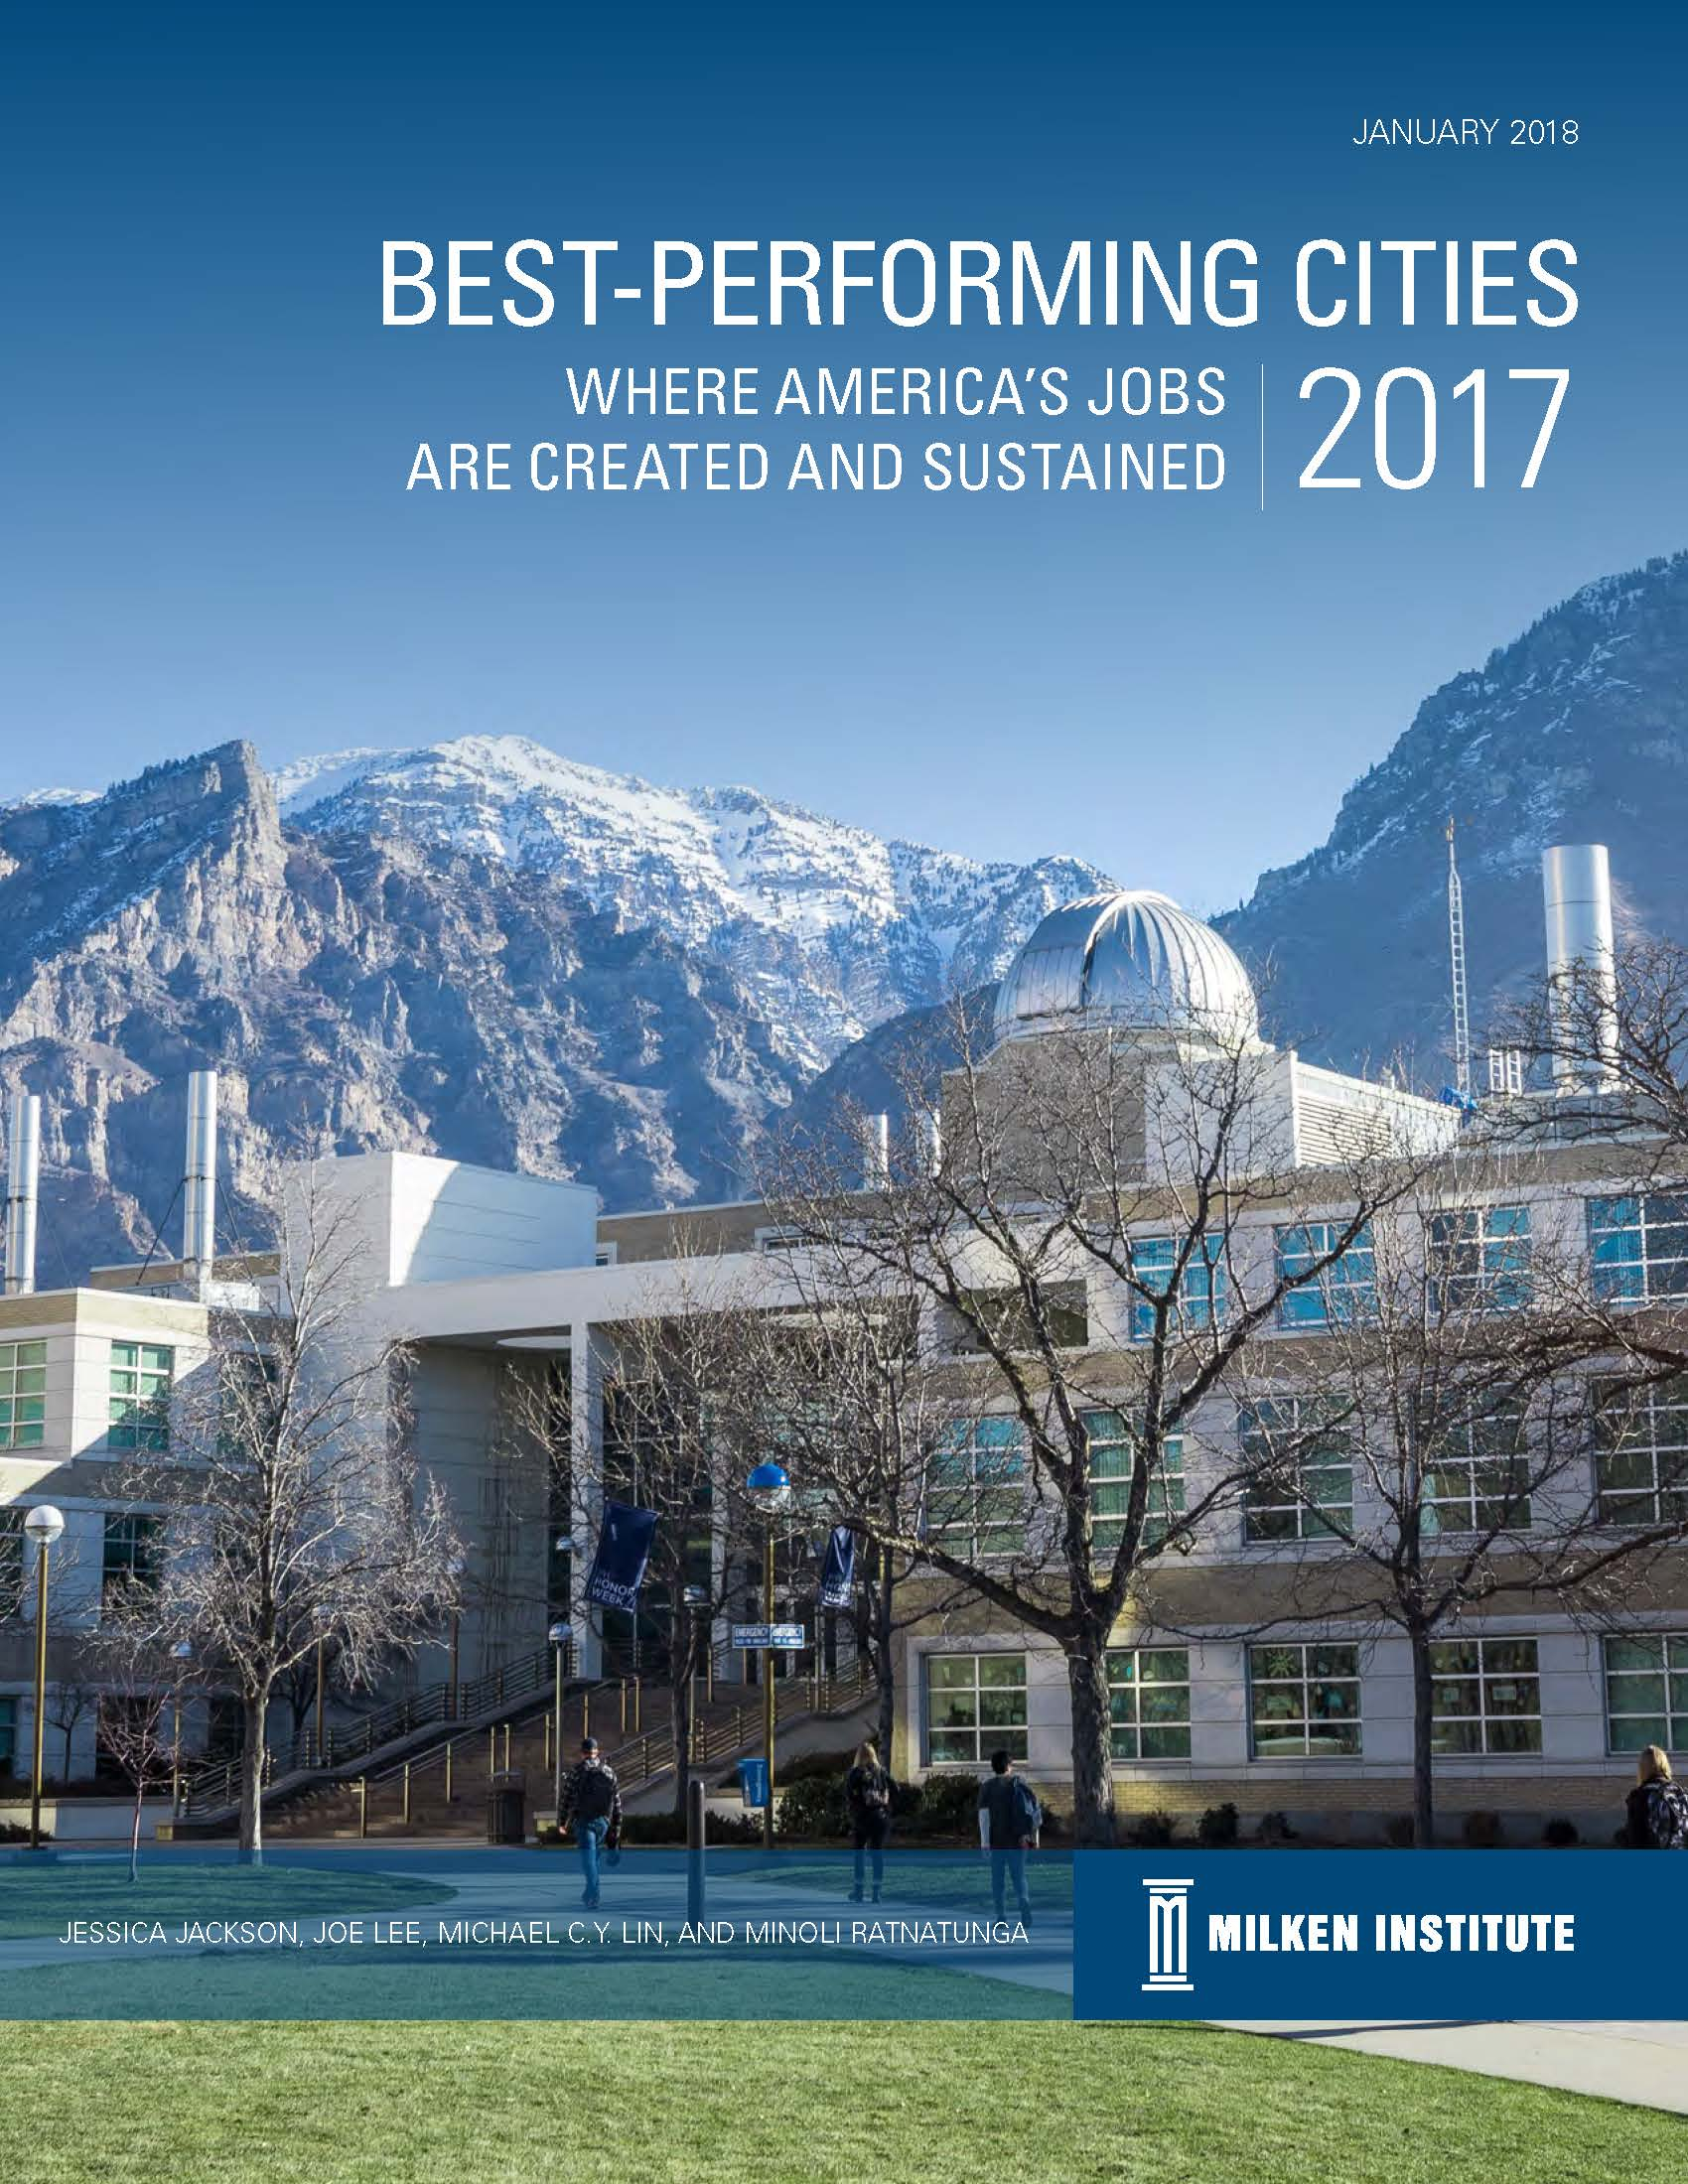 Best-Performing Cities 2017: Where America's Jobs are Created and